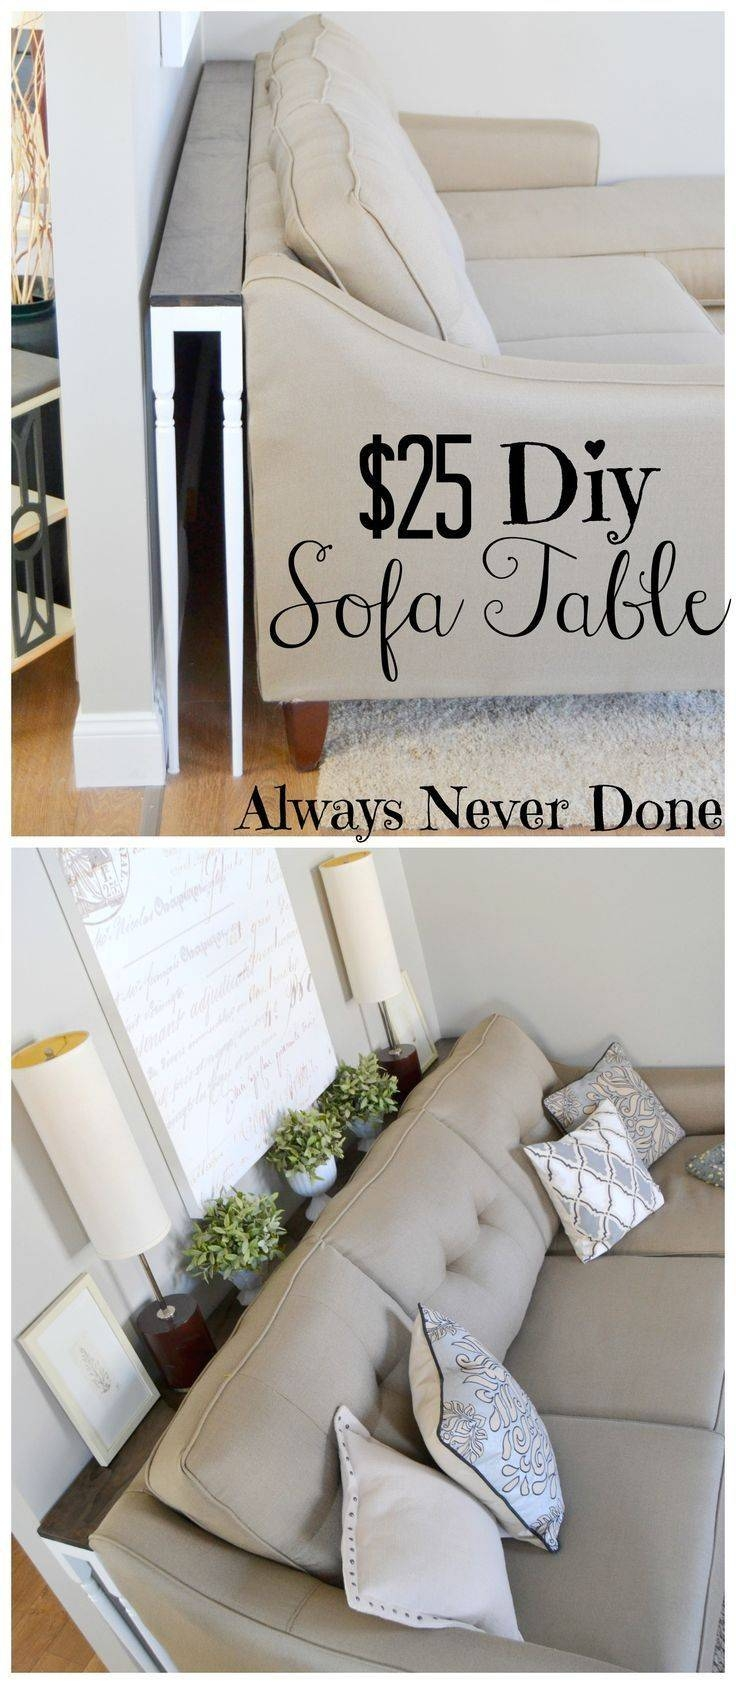 Best 25+ Table Behind Couch Ideas On Pinterest | Behind Sofa Table with Sofa Drink Tables (Image 9 of 30)